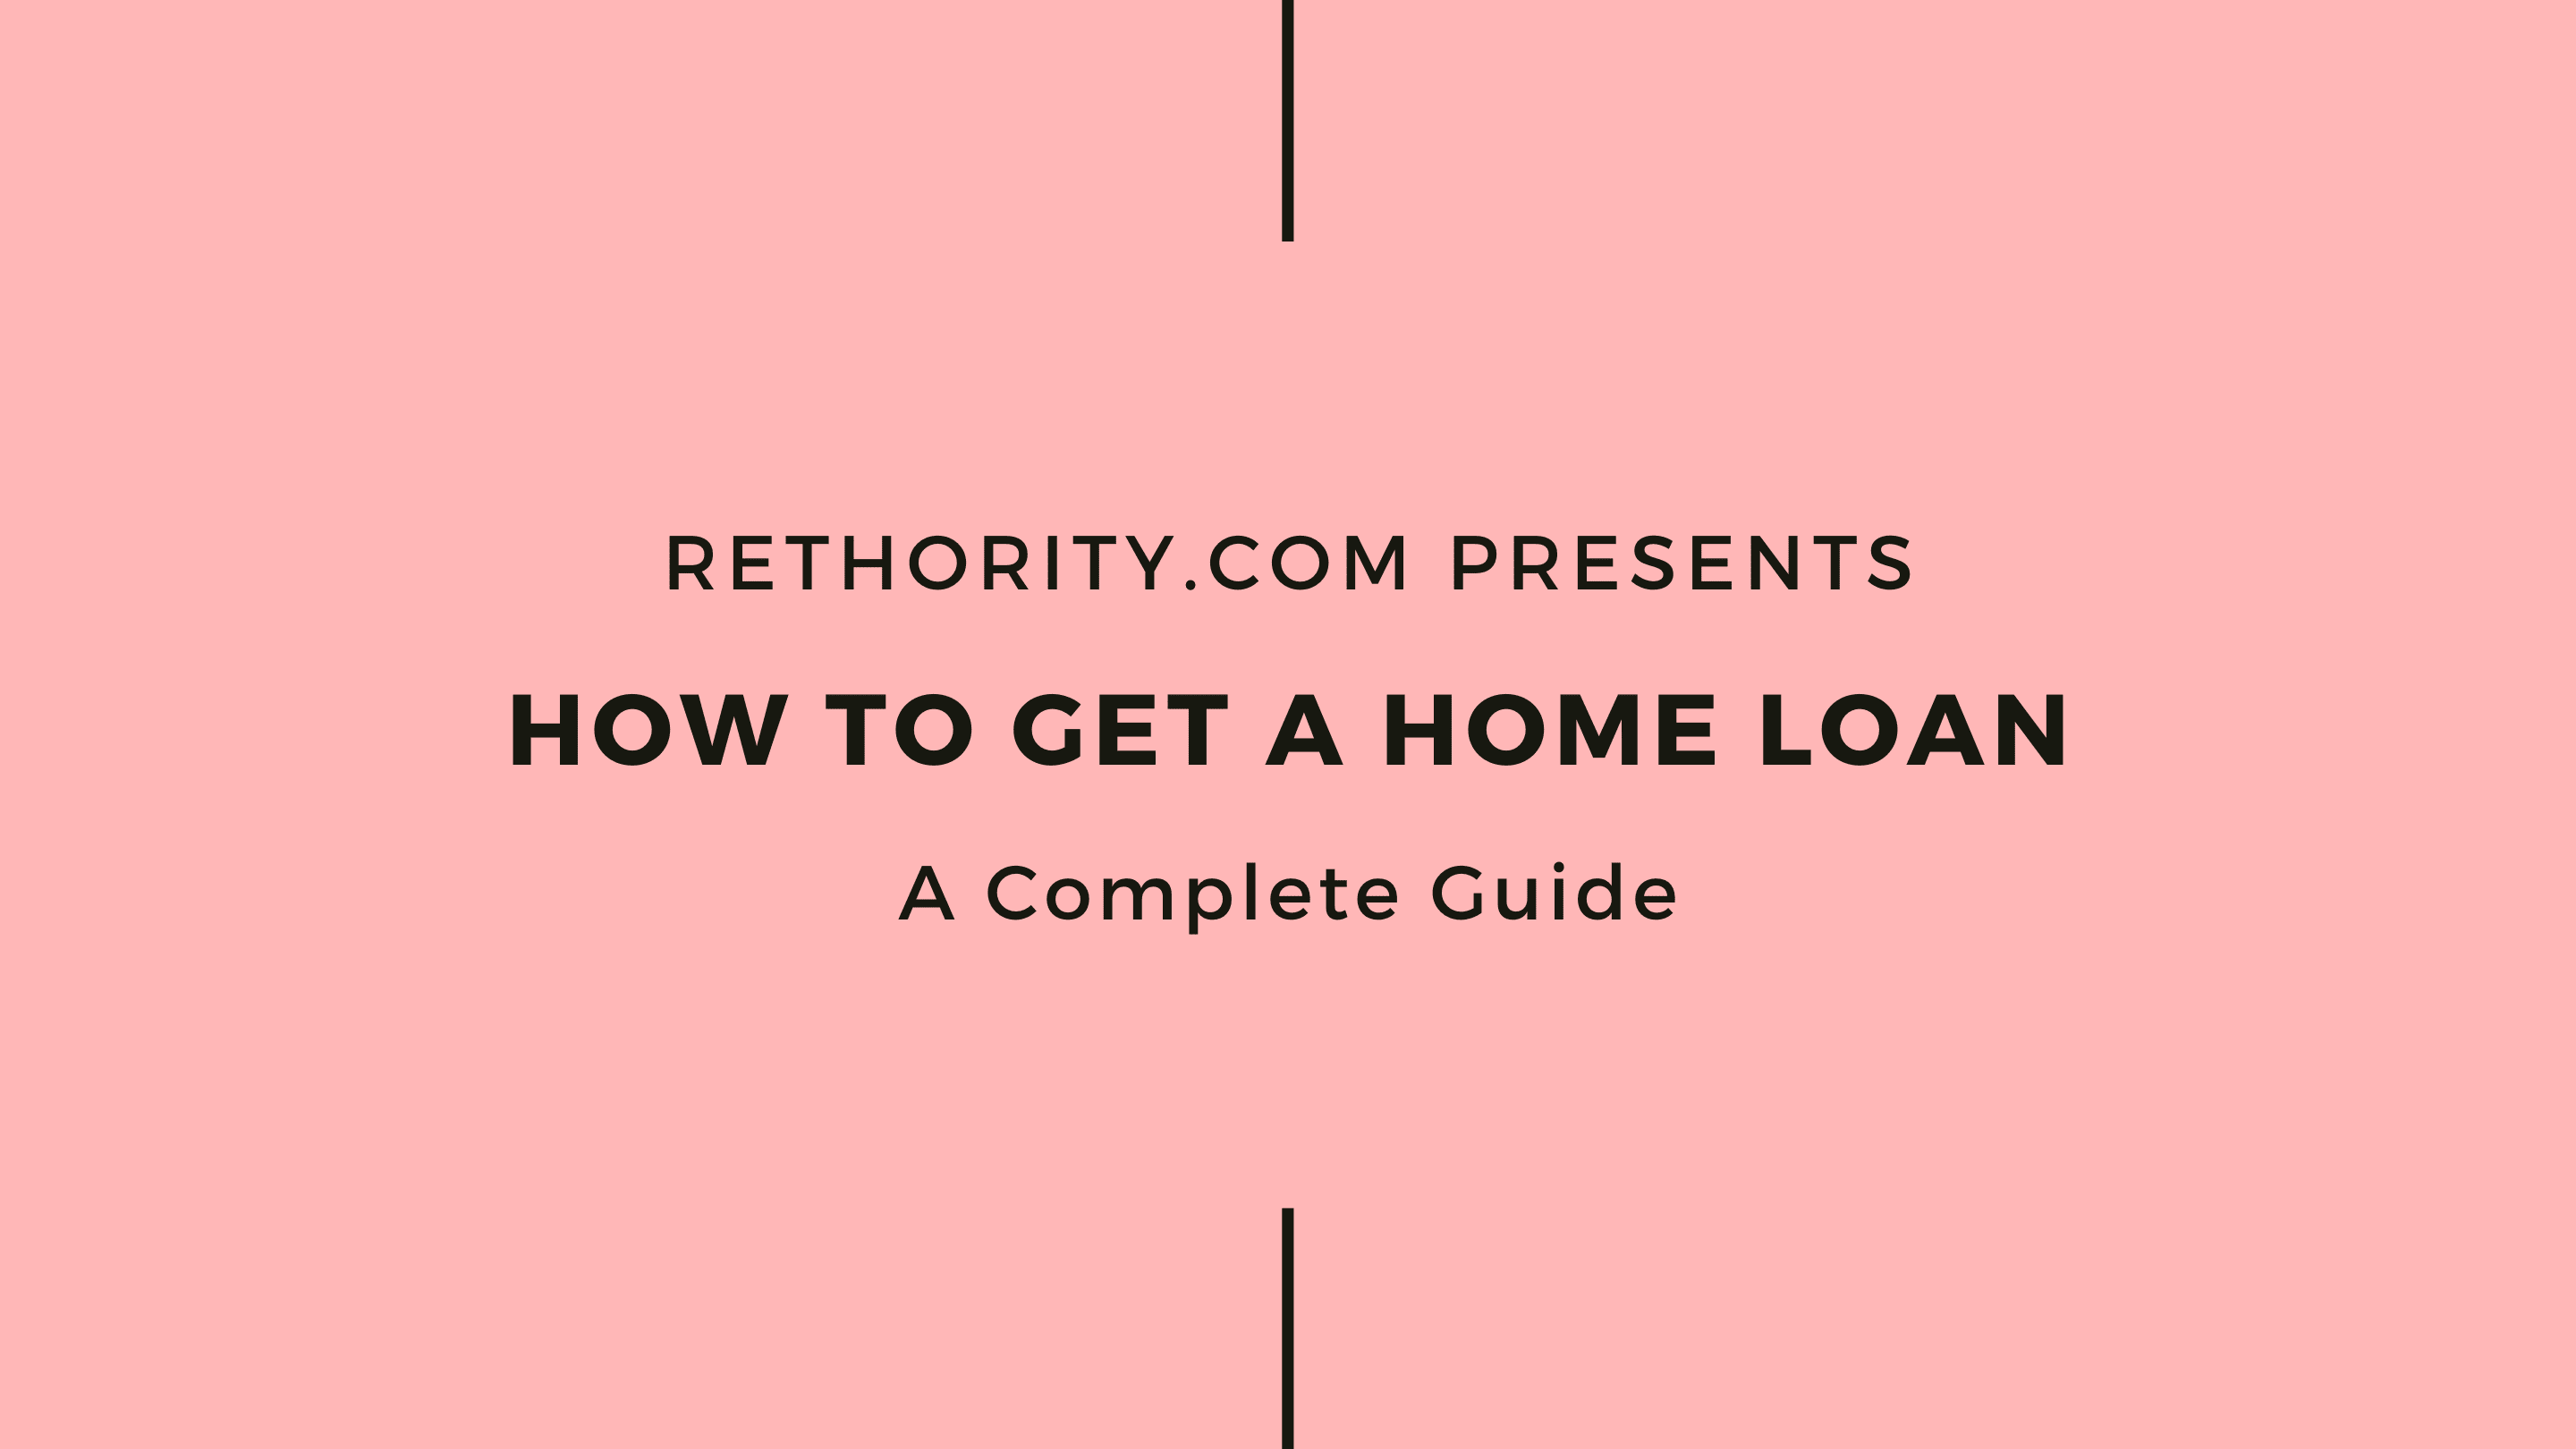 How to Get a Home Loan graphic against salmon background